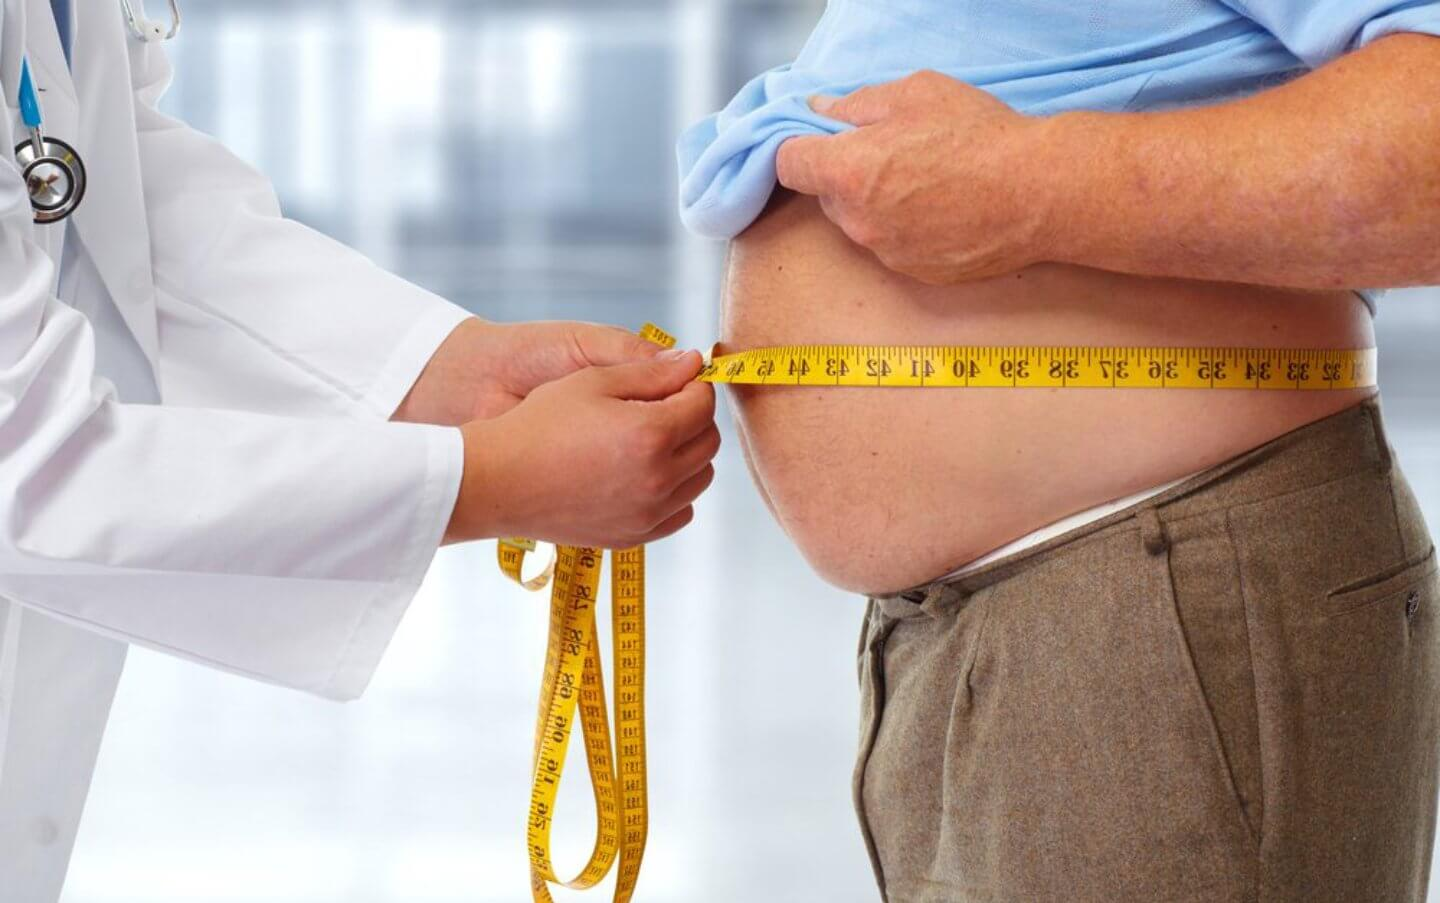 What else can explain the fact that some people lose fat easier than others?